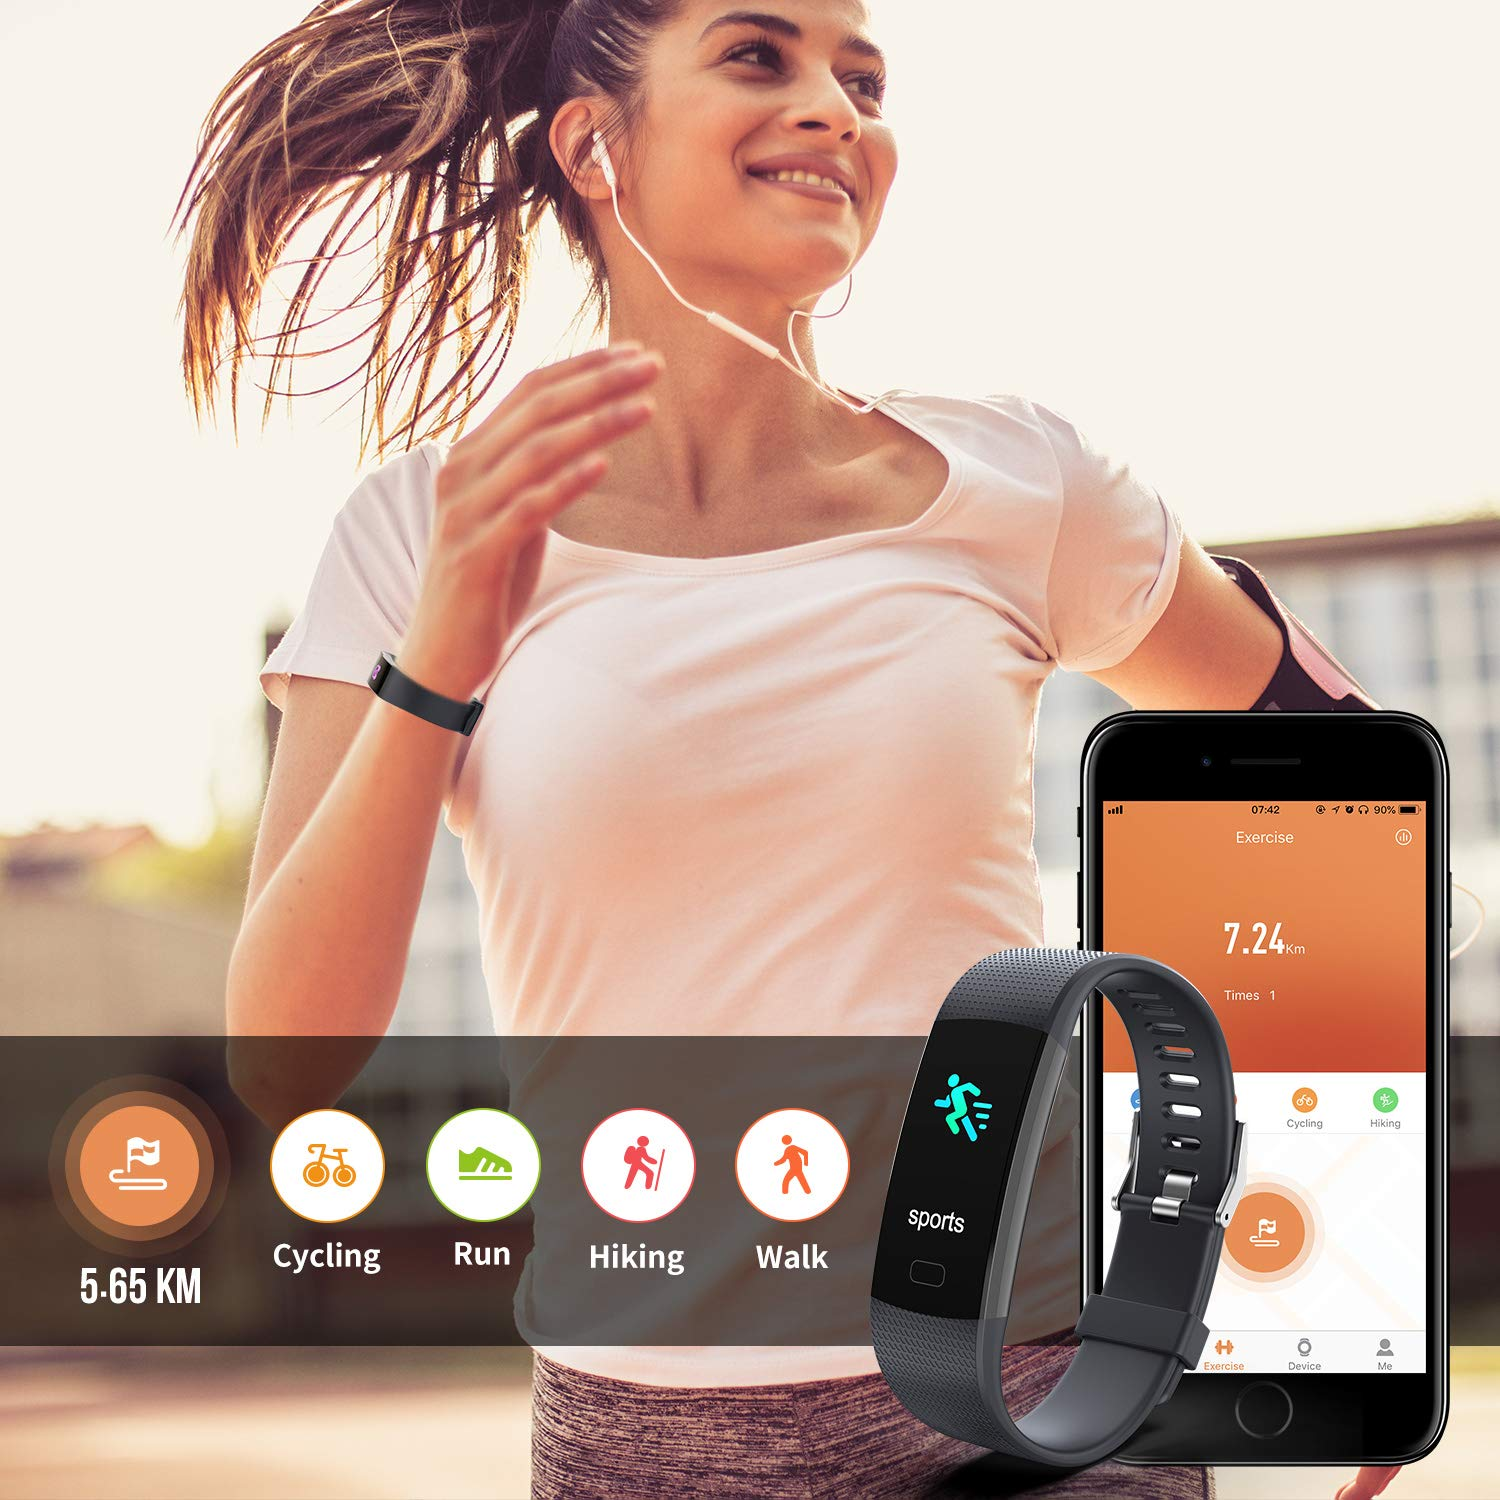 Fitness Tracker HR, Y1 Activity Tracker Watch with Heart Rate Monitor, Pedometer IP67 Waterproof Sleep Monitor Step Counter for Android & iPhone (Midnight Black) by Akuti (Image #3)